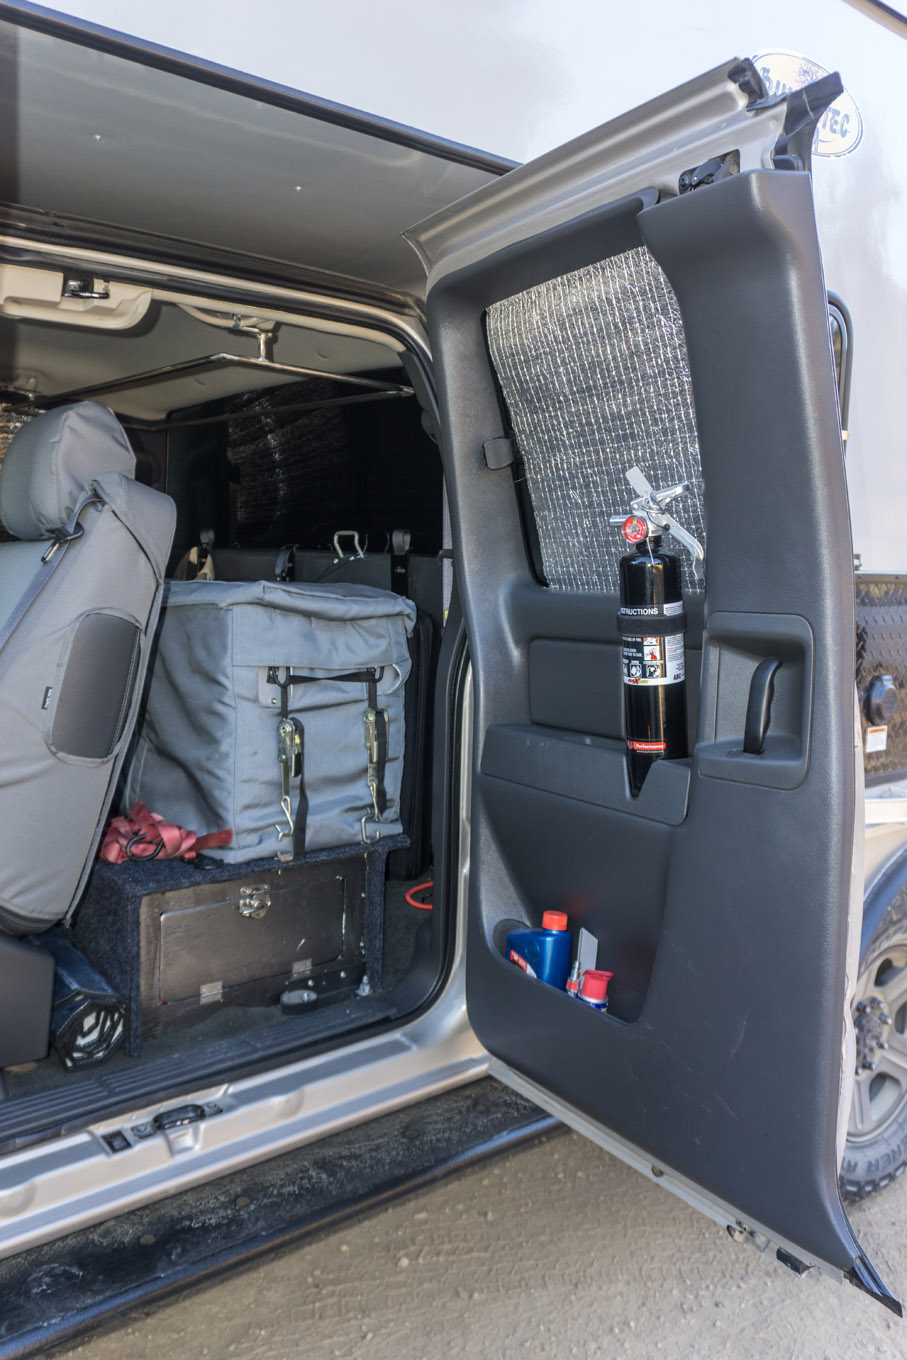 The rear seats were removed and replaced with a custom storage